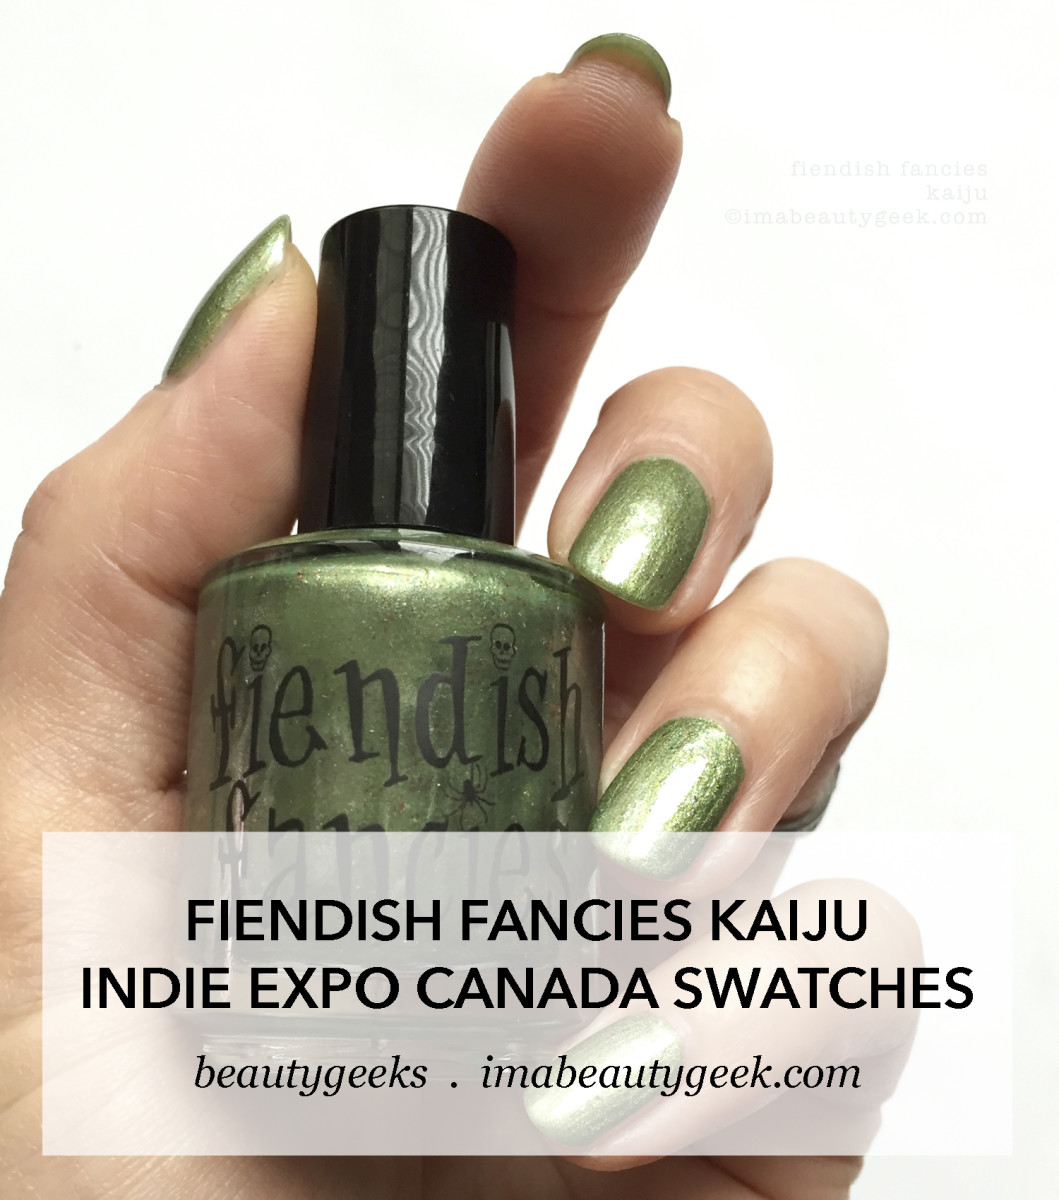 Fiendish Fancies Kaiju _ Indie Expo Canada Swatches - Version 2